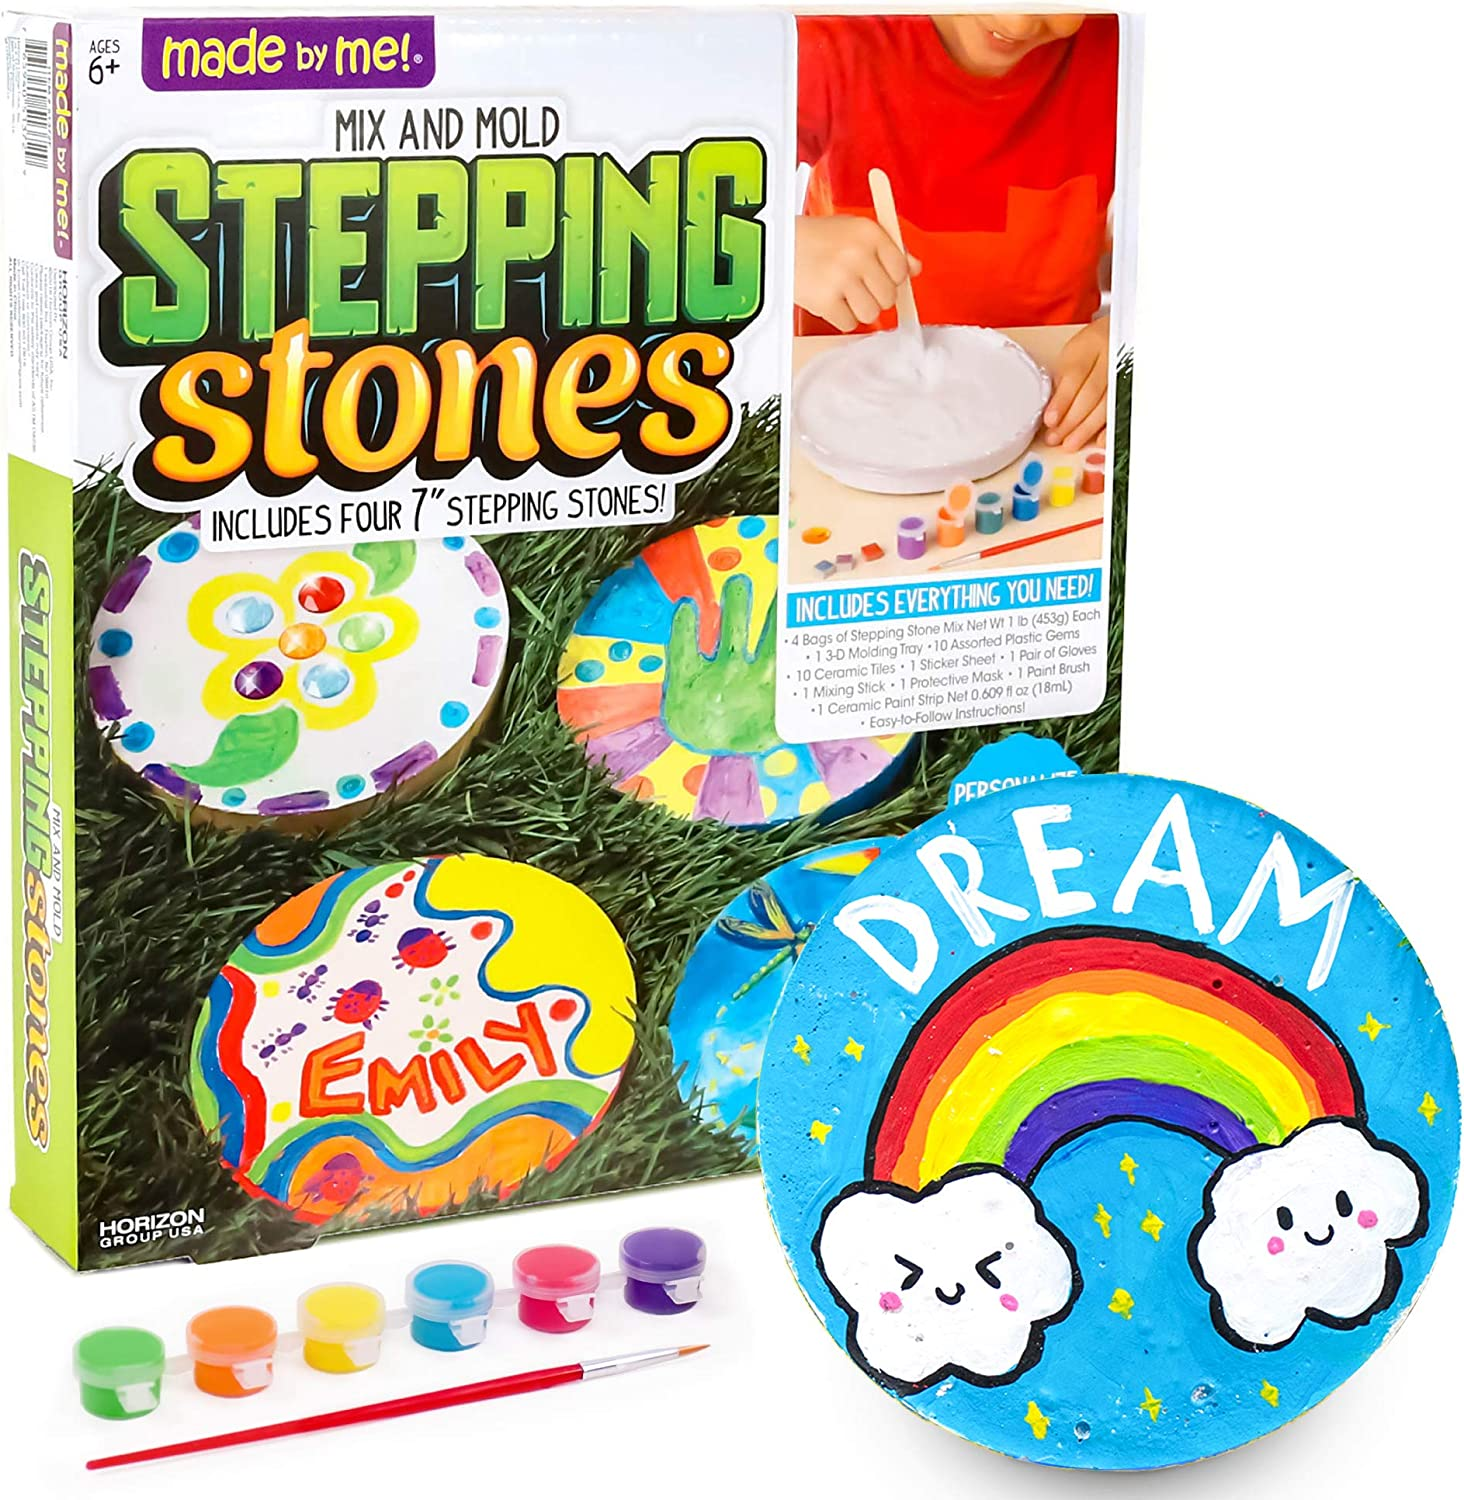 Amazon Com Made By Me Mix Mold Your Own Stepping Stones By Horizon Group Usa Make 4 Diy Personalized Stepping Stones Molding Tray Decorative Gemstones Paint Pots Paint Brush Gloves Sticker Sheet Included Toys